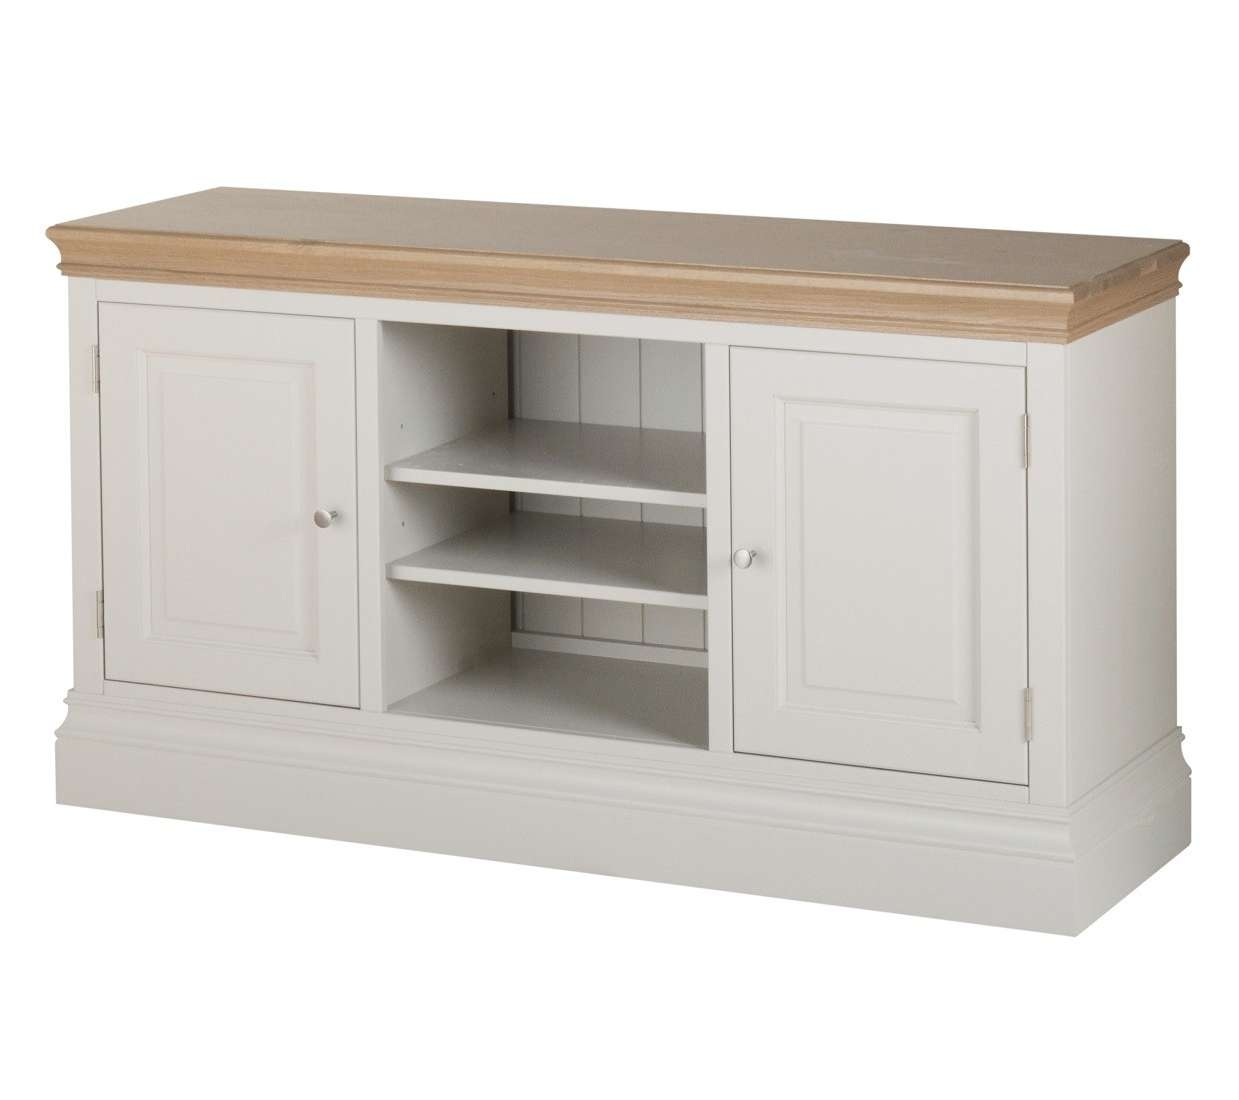 Country Oak And Painted Large Tv Cabinet | Oak Furniture Uk Inside Large Oak Tv Cabinets (View 16 of 20)